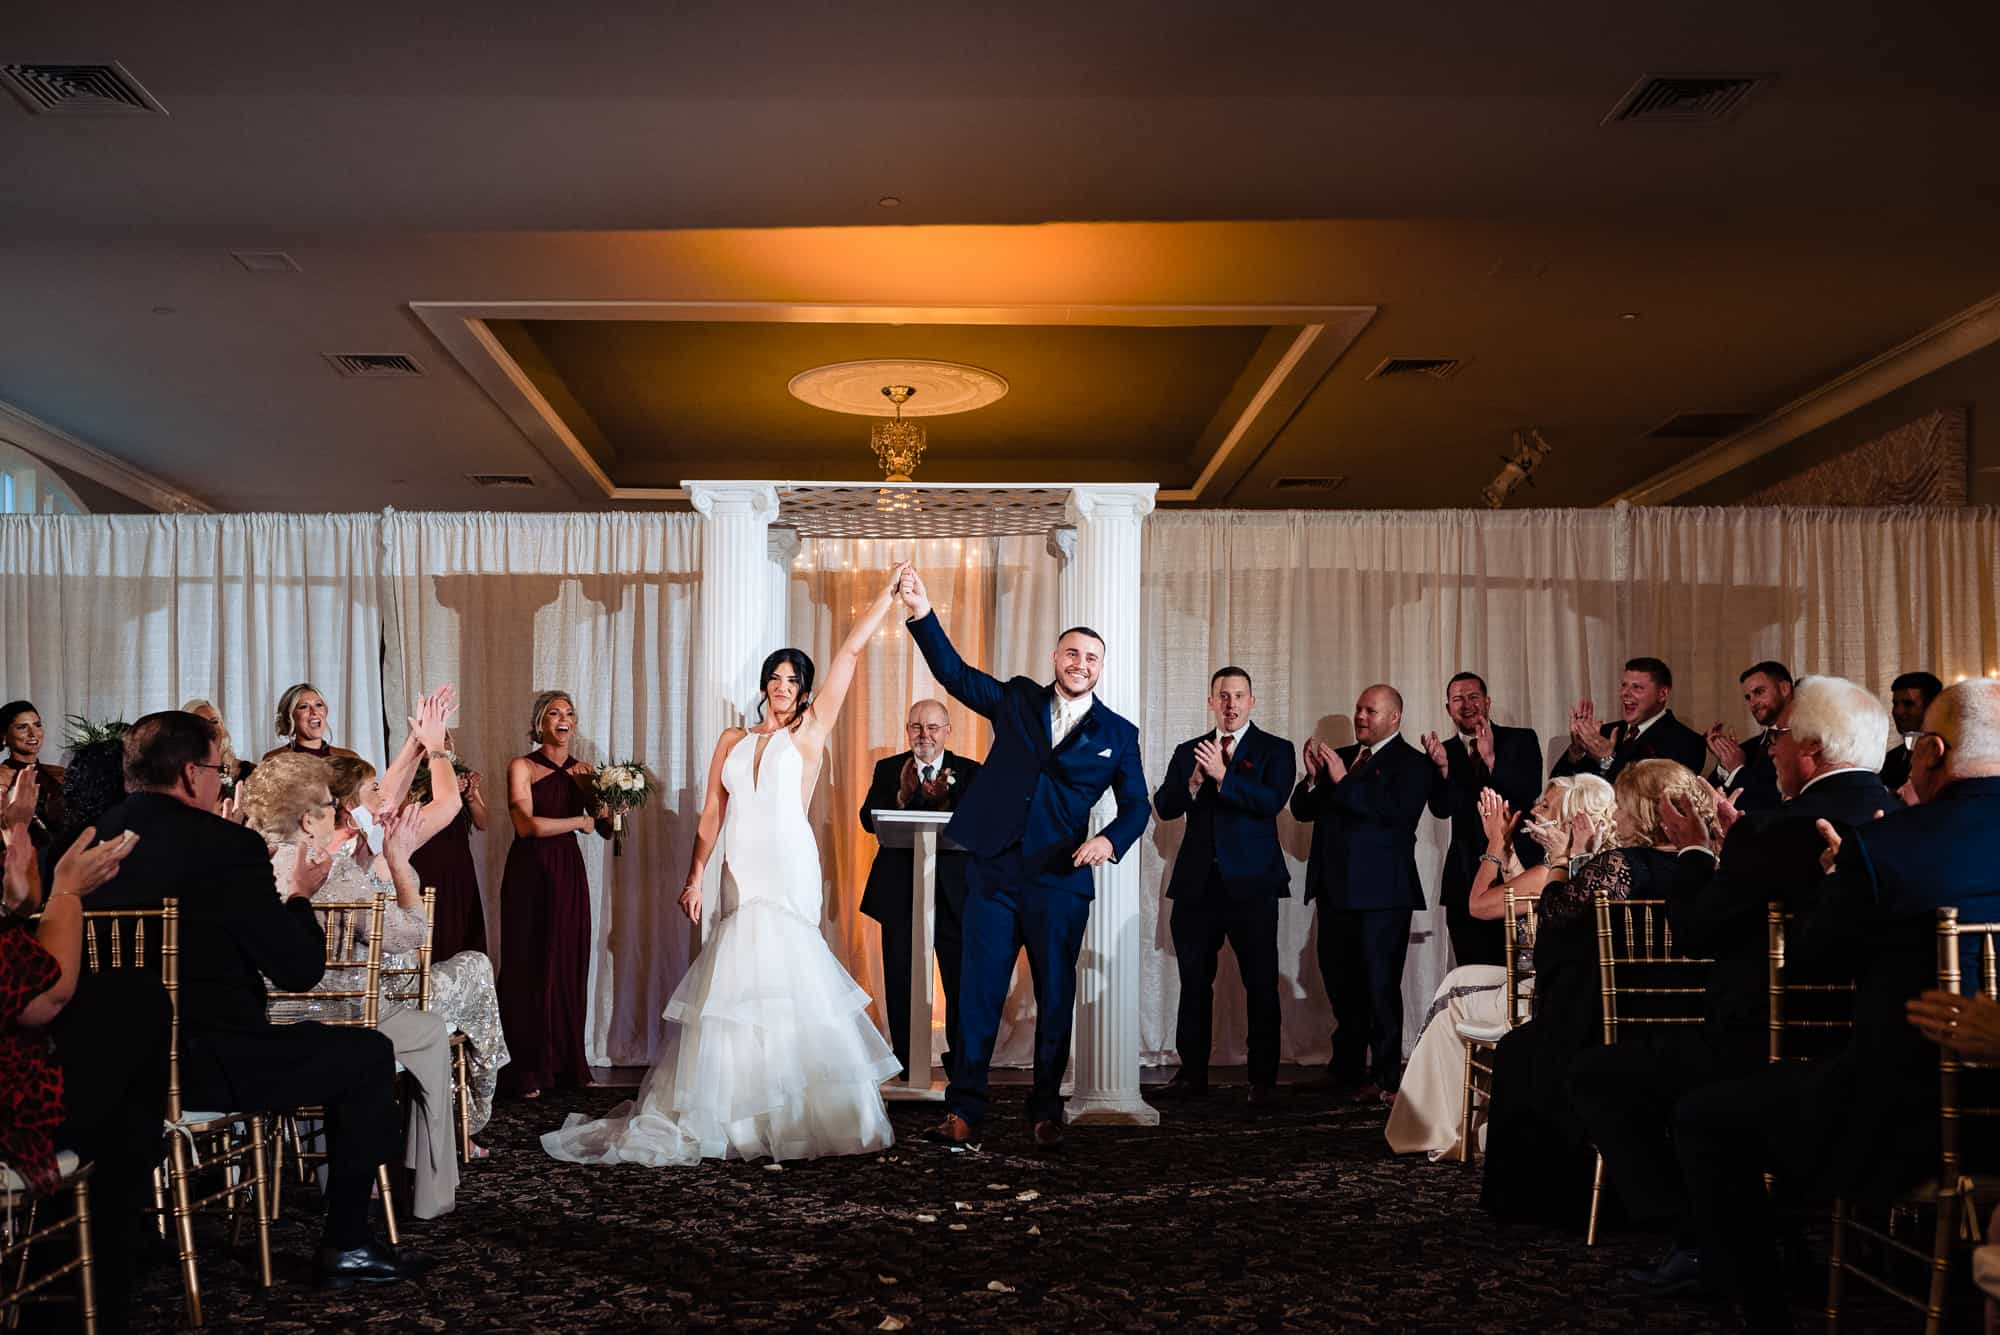 wedding ceremony, bride and groom holding hands in the air facing guests